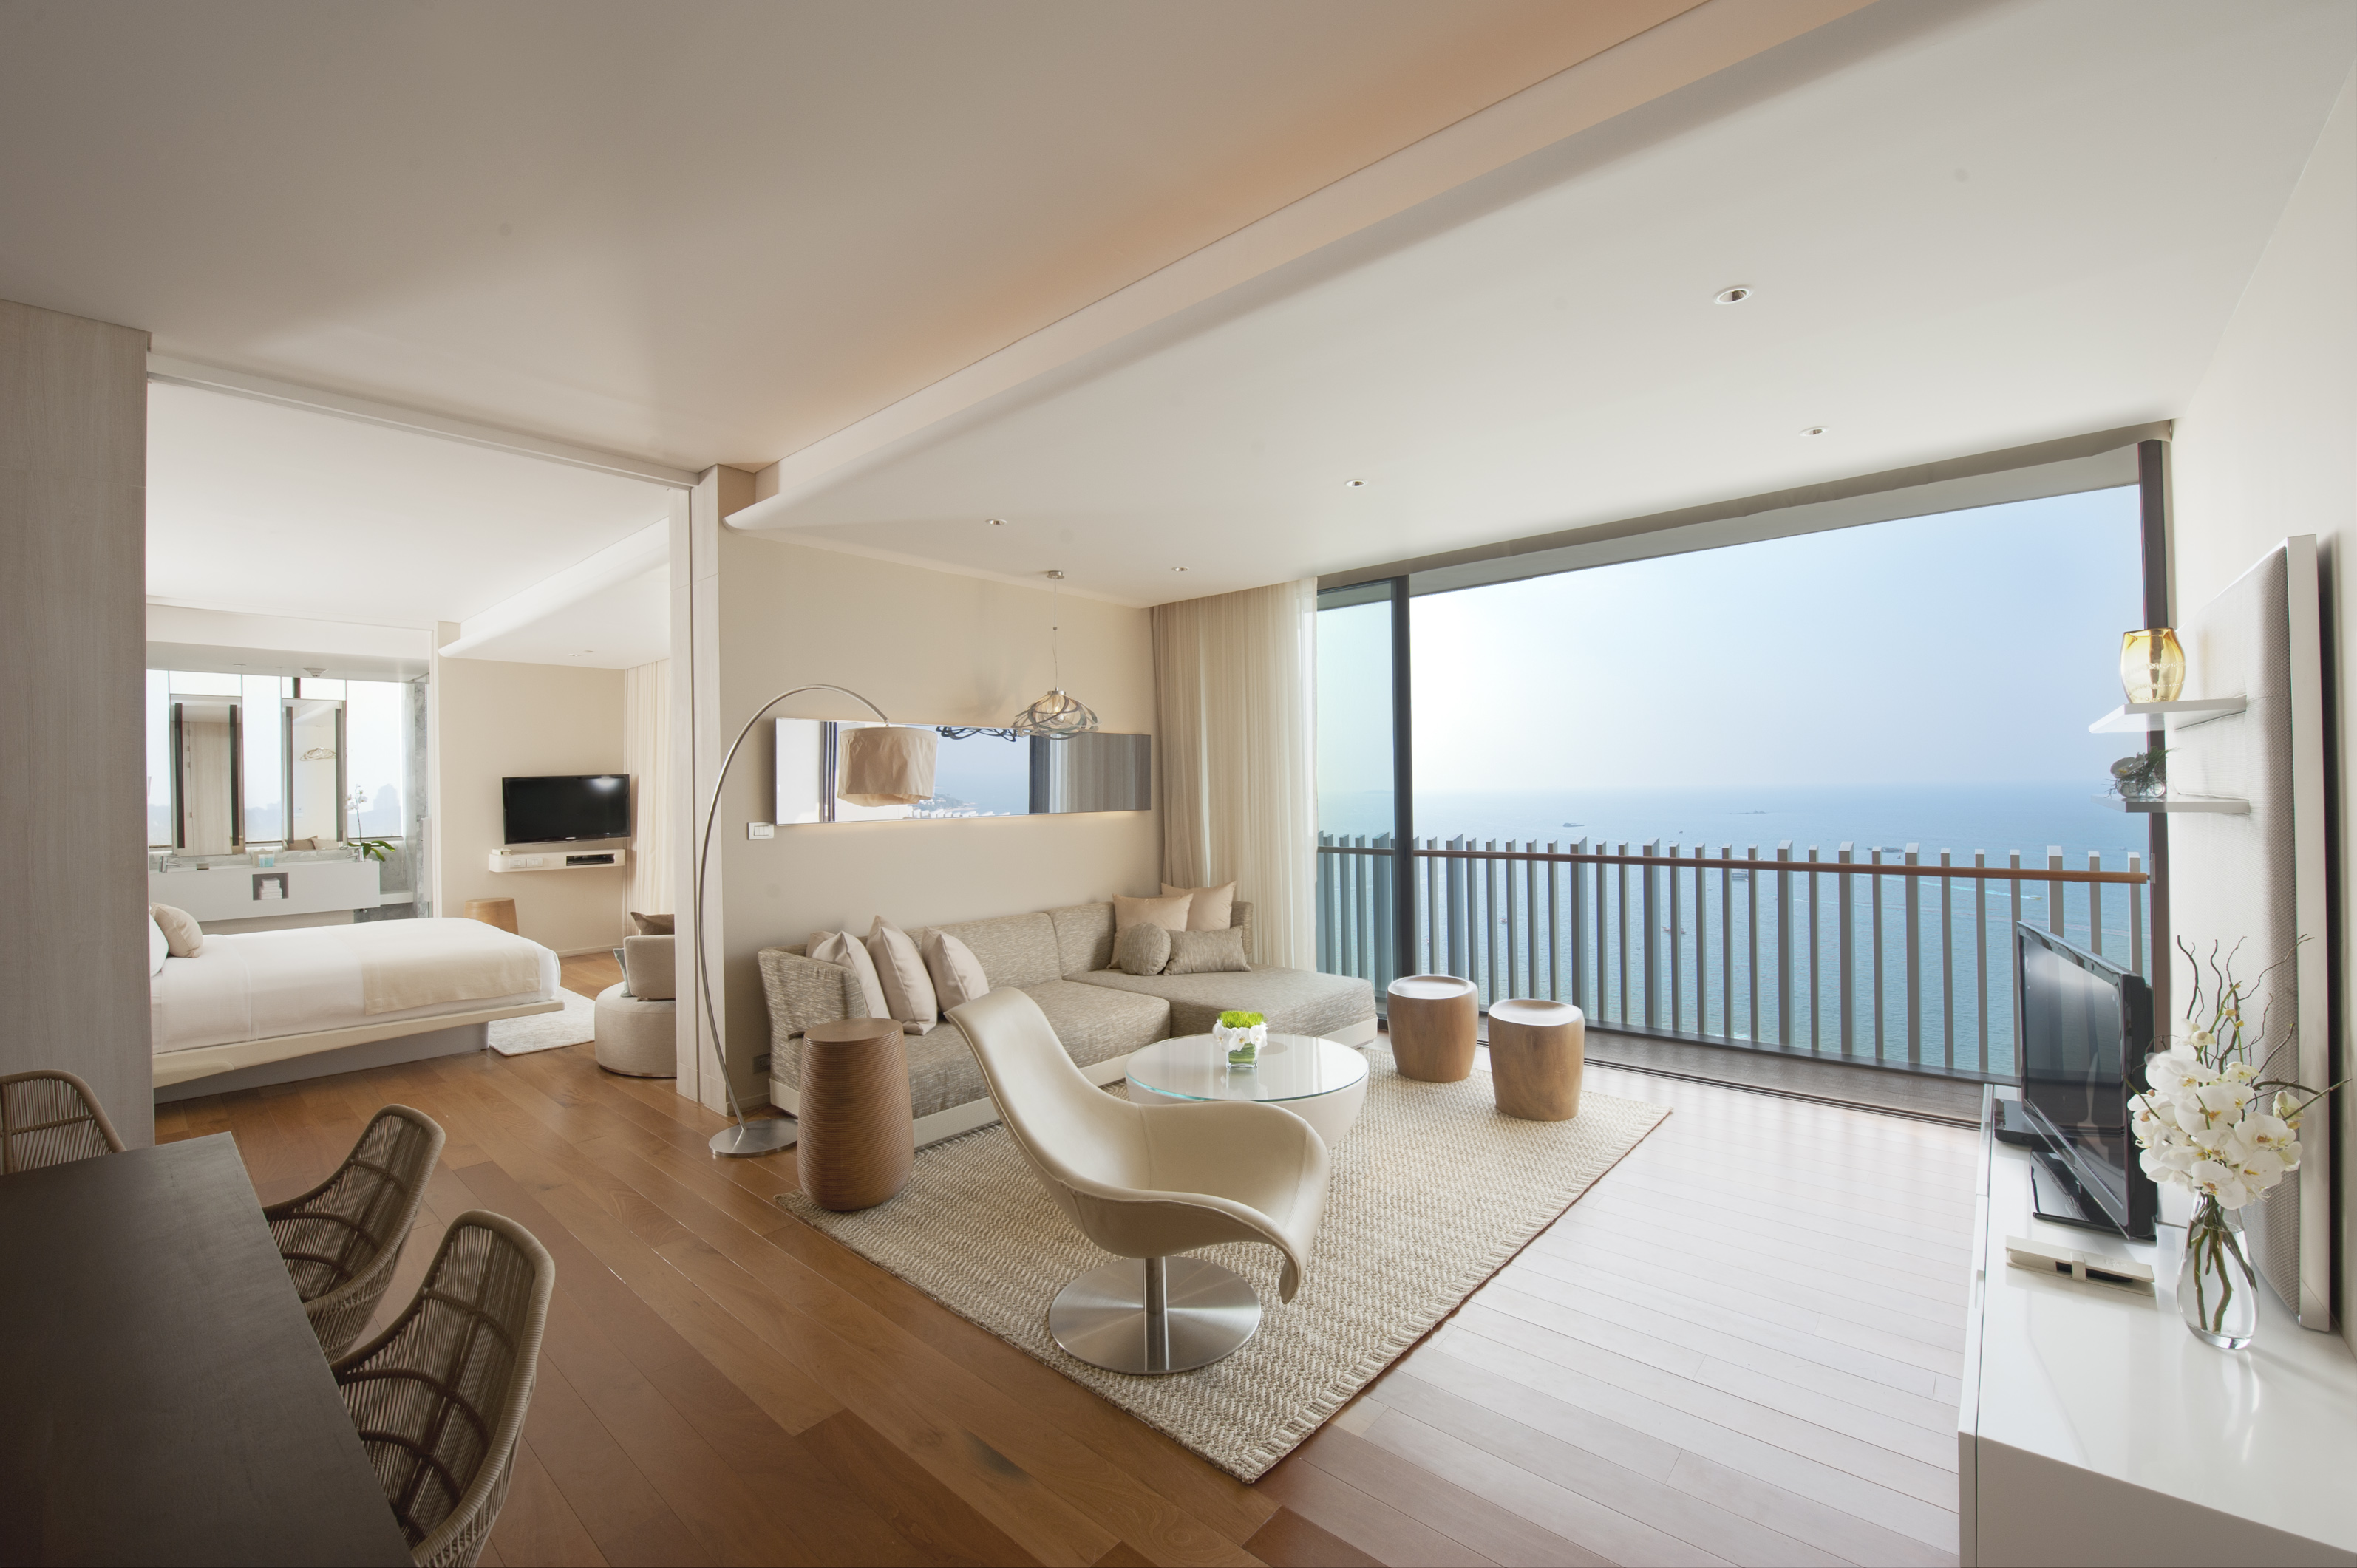 The spacious King Grand Ocean Suite at Hilton Pattaya boasts simplicity and elegance and comes with a view of the ocean.